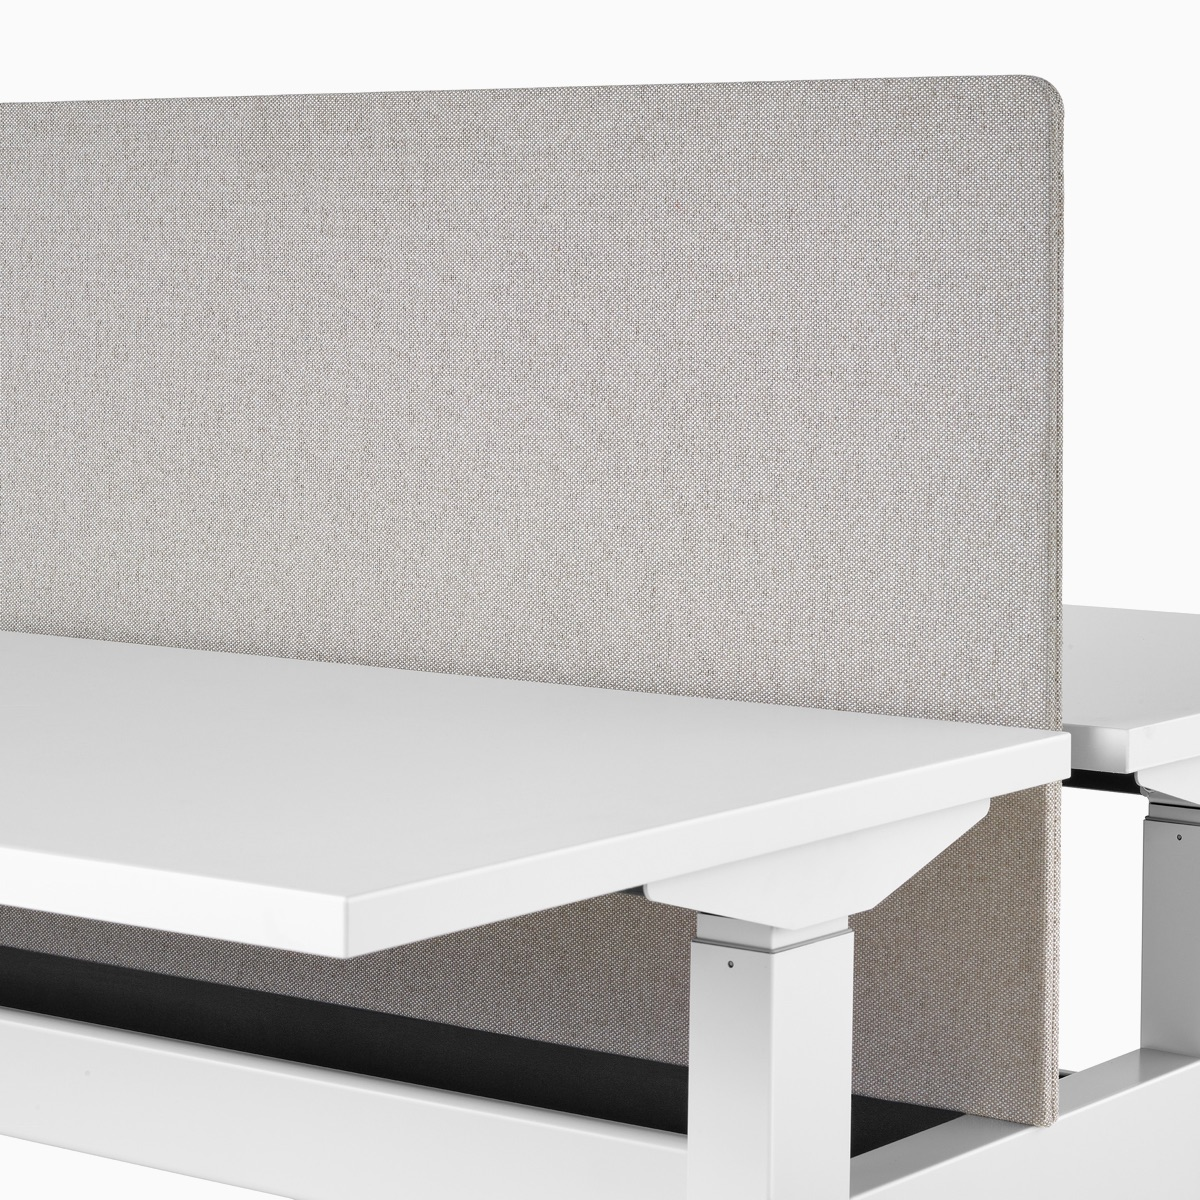 A close-up view of a gray fabric screen attached to the surface of a Nevi Link standing desk system.